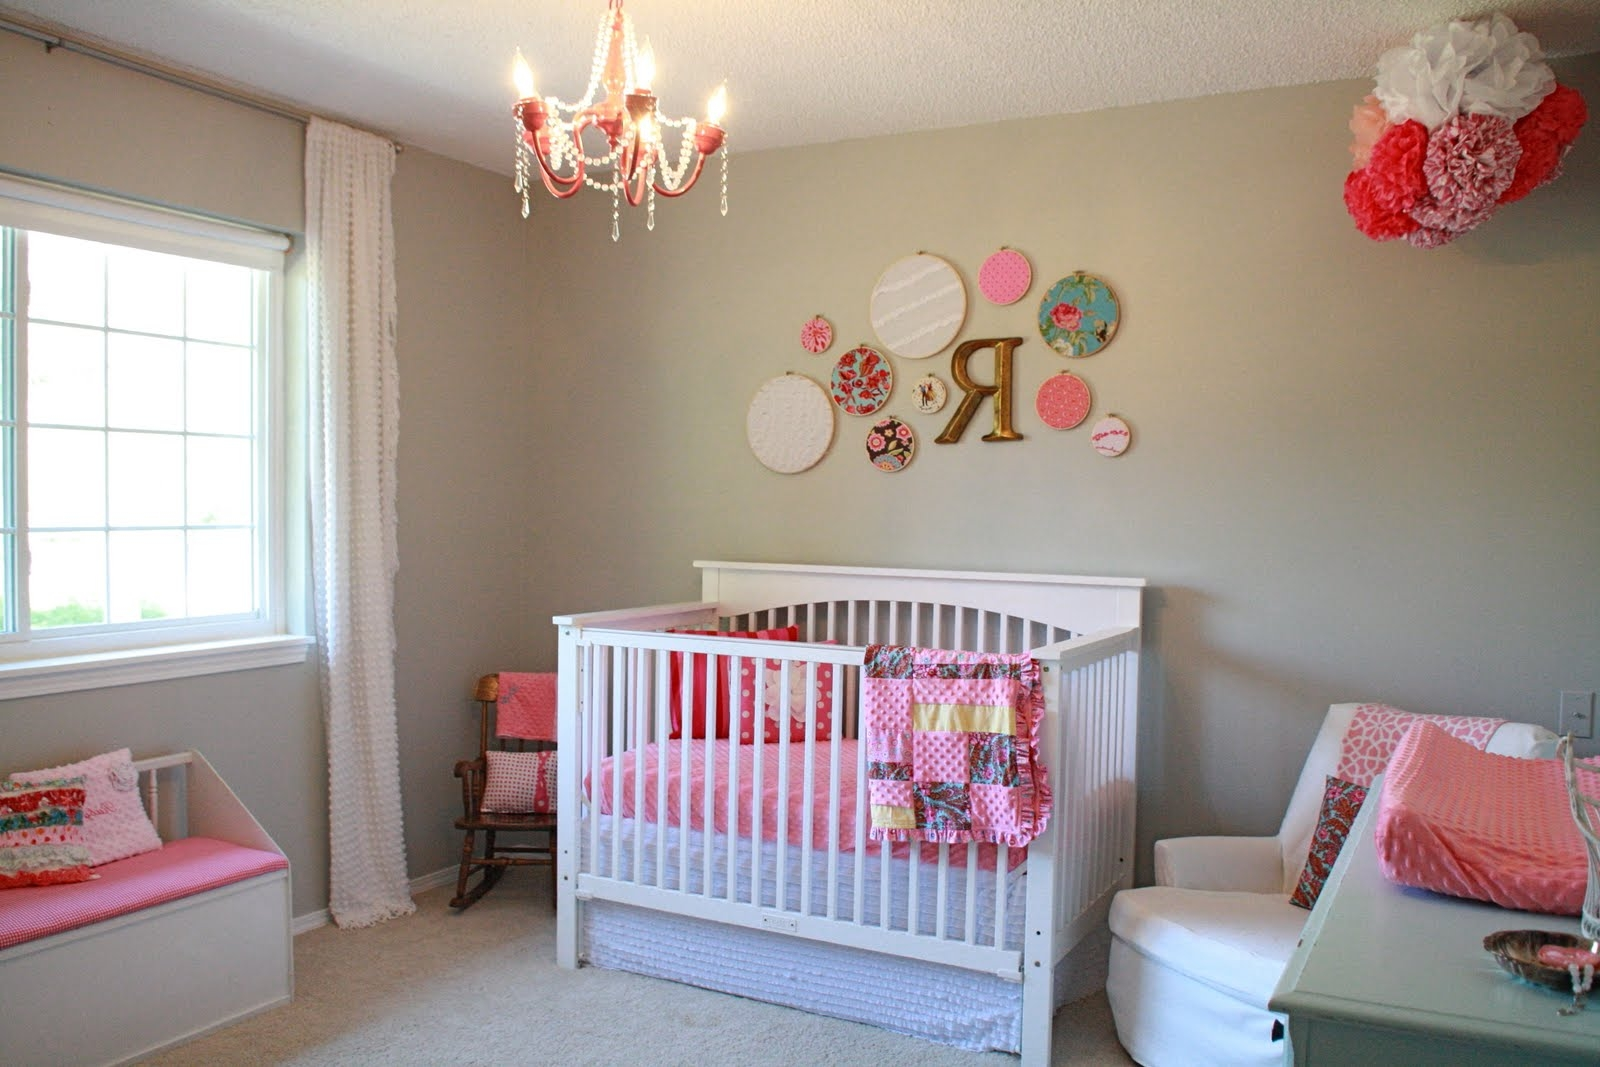 Baby girl room decor ideas Baby girl decorating room